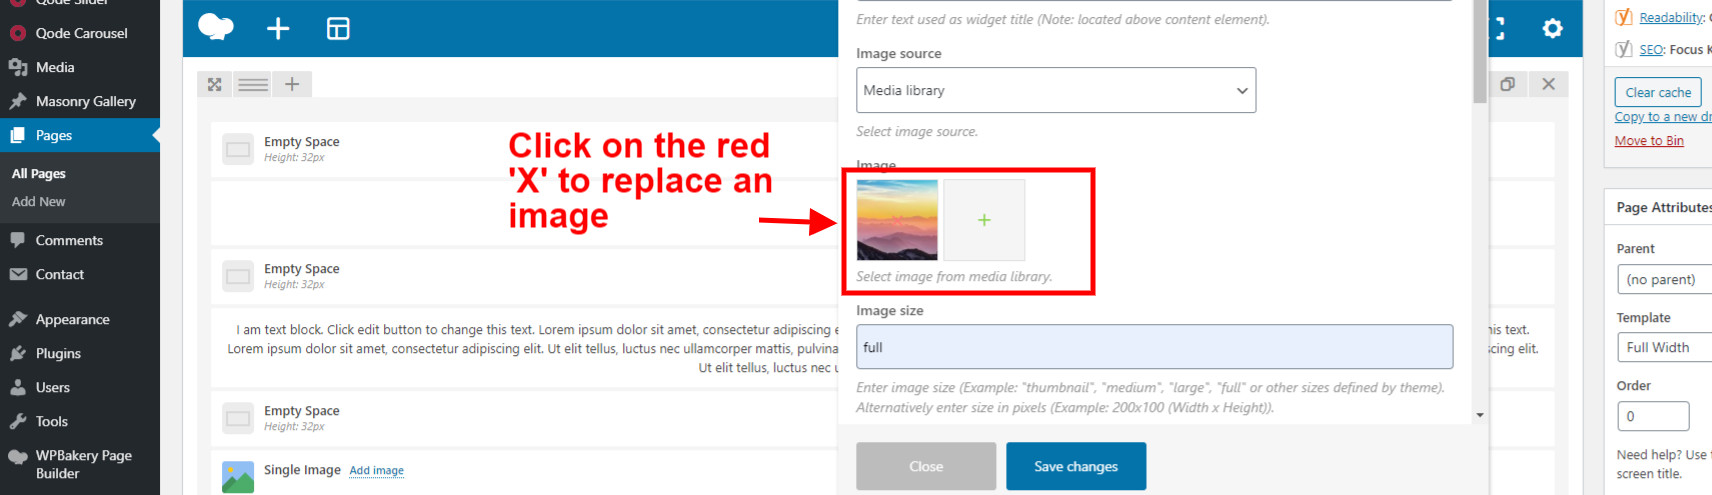 Replace an Image in WordPress